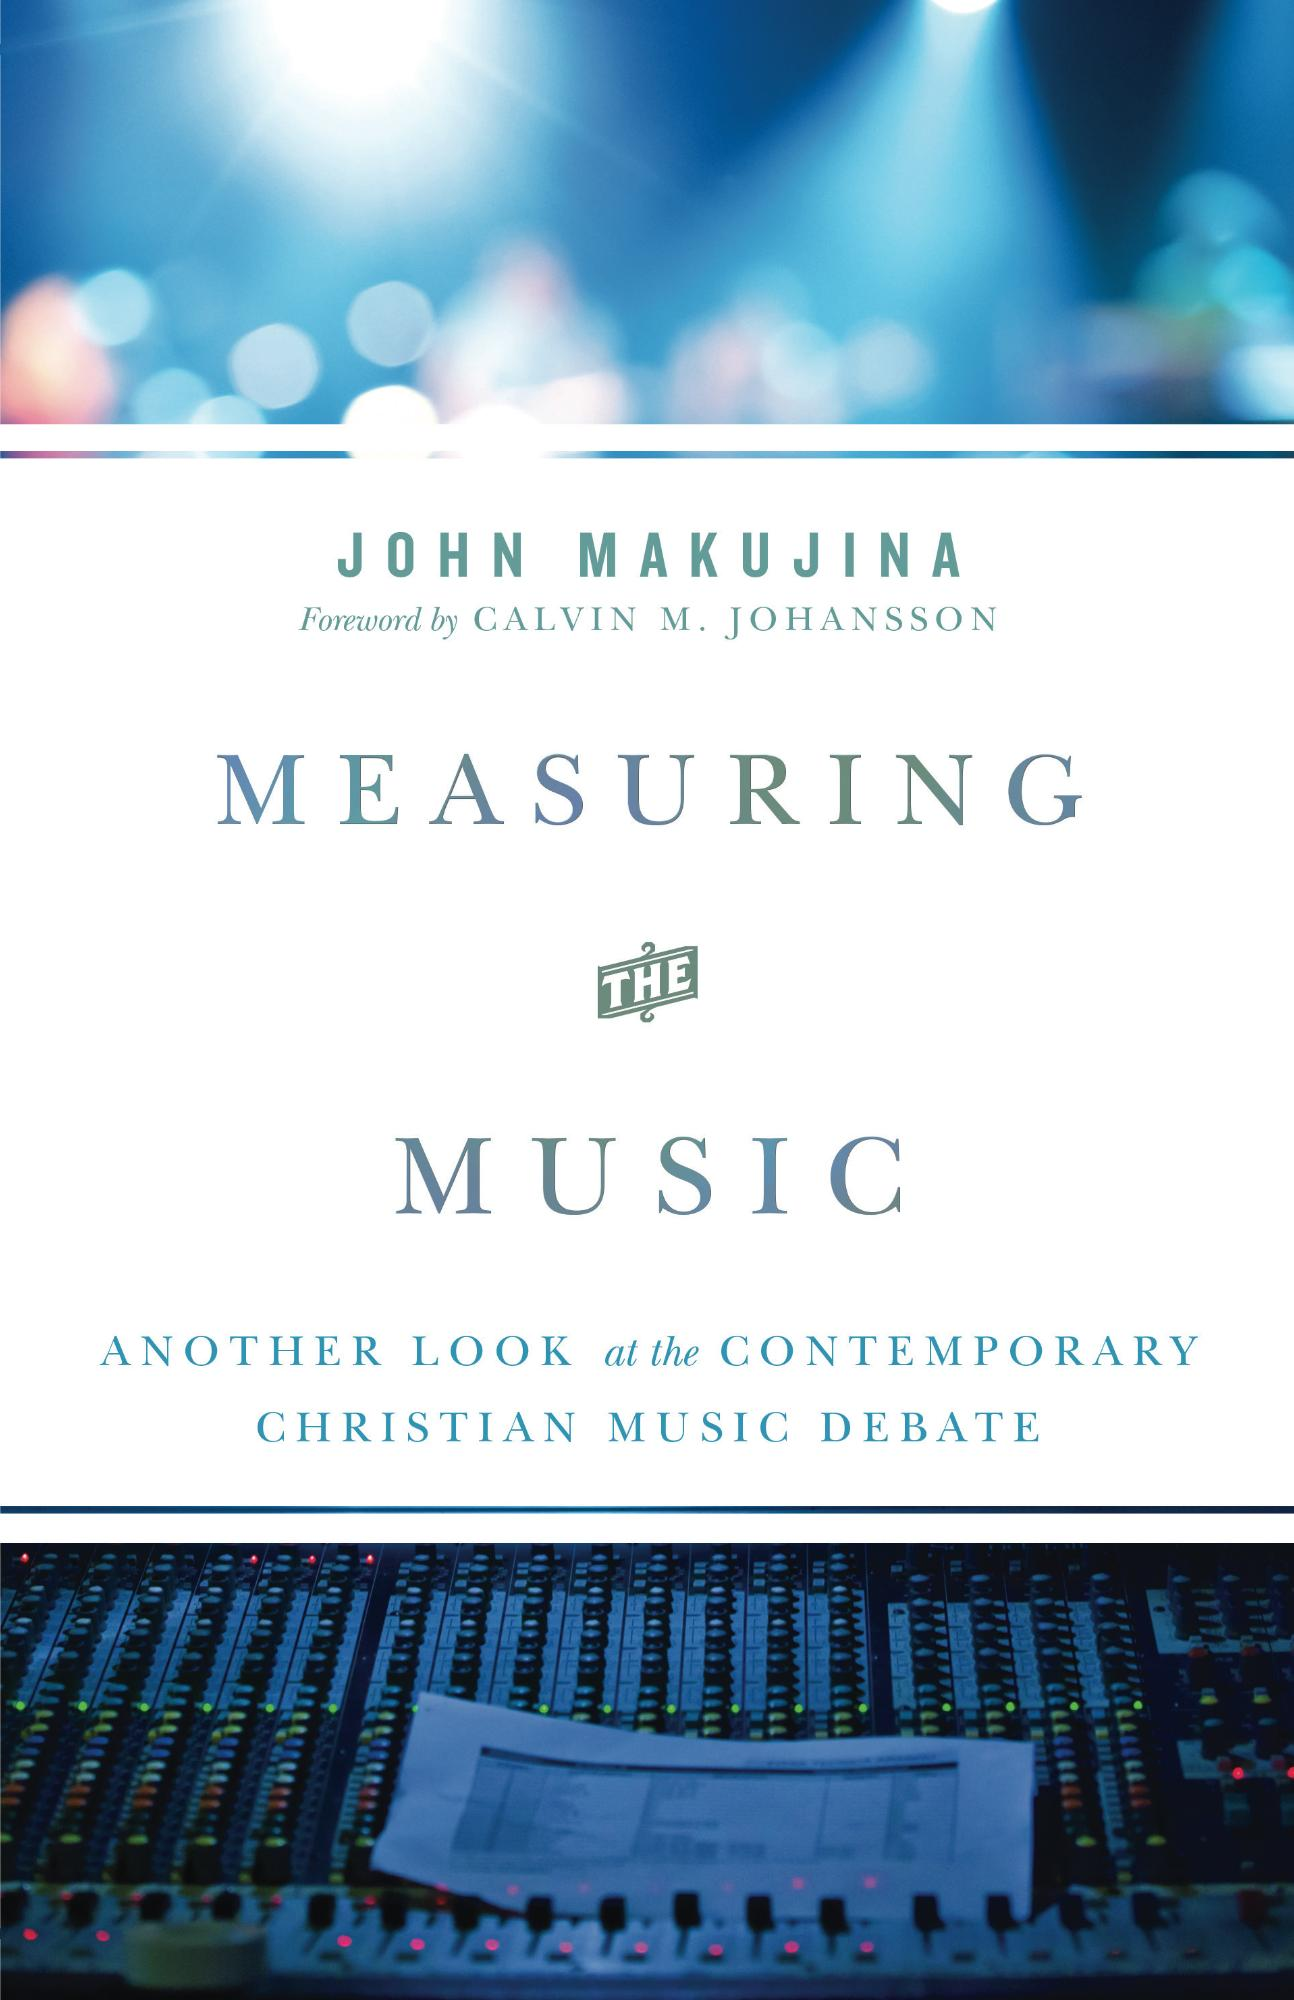 My favorite parts of Measuring the Music